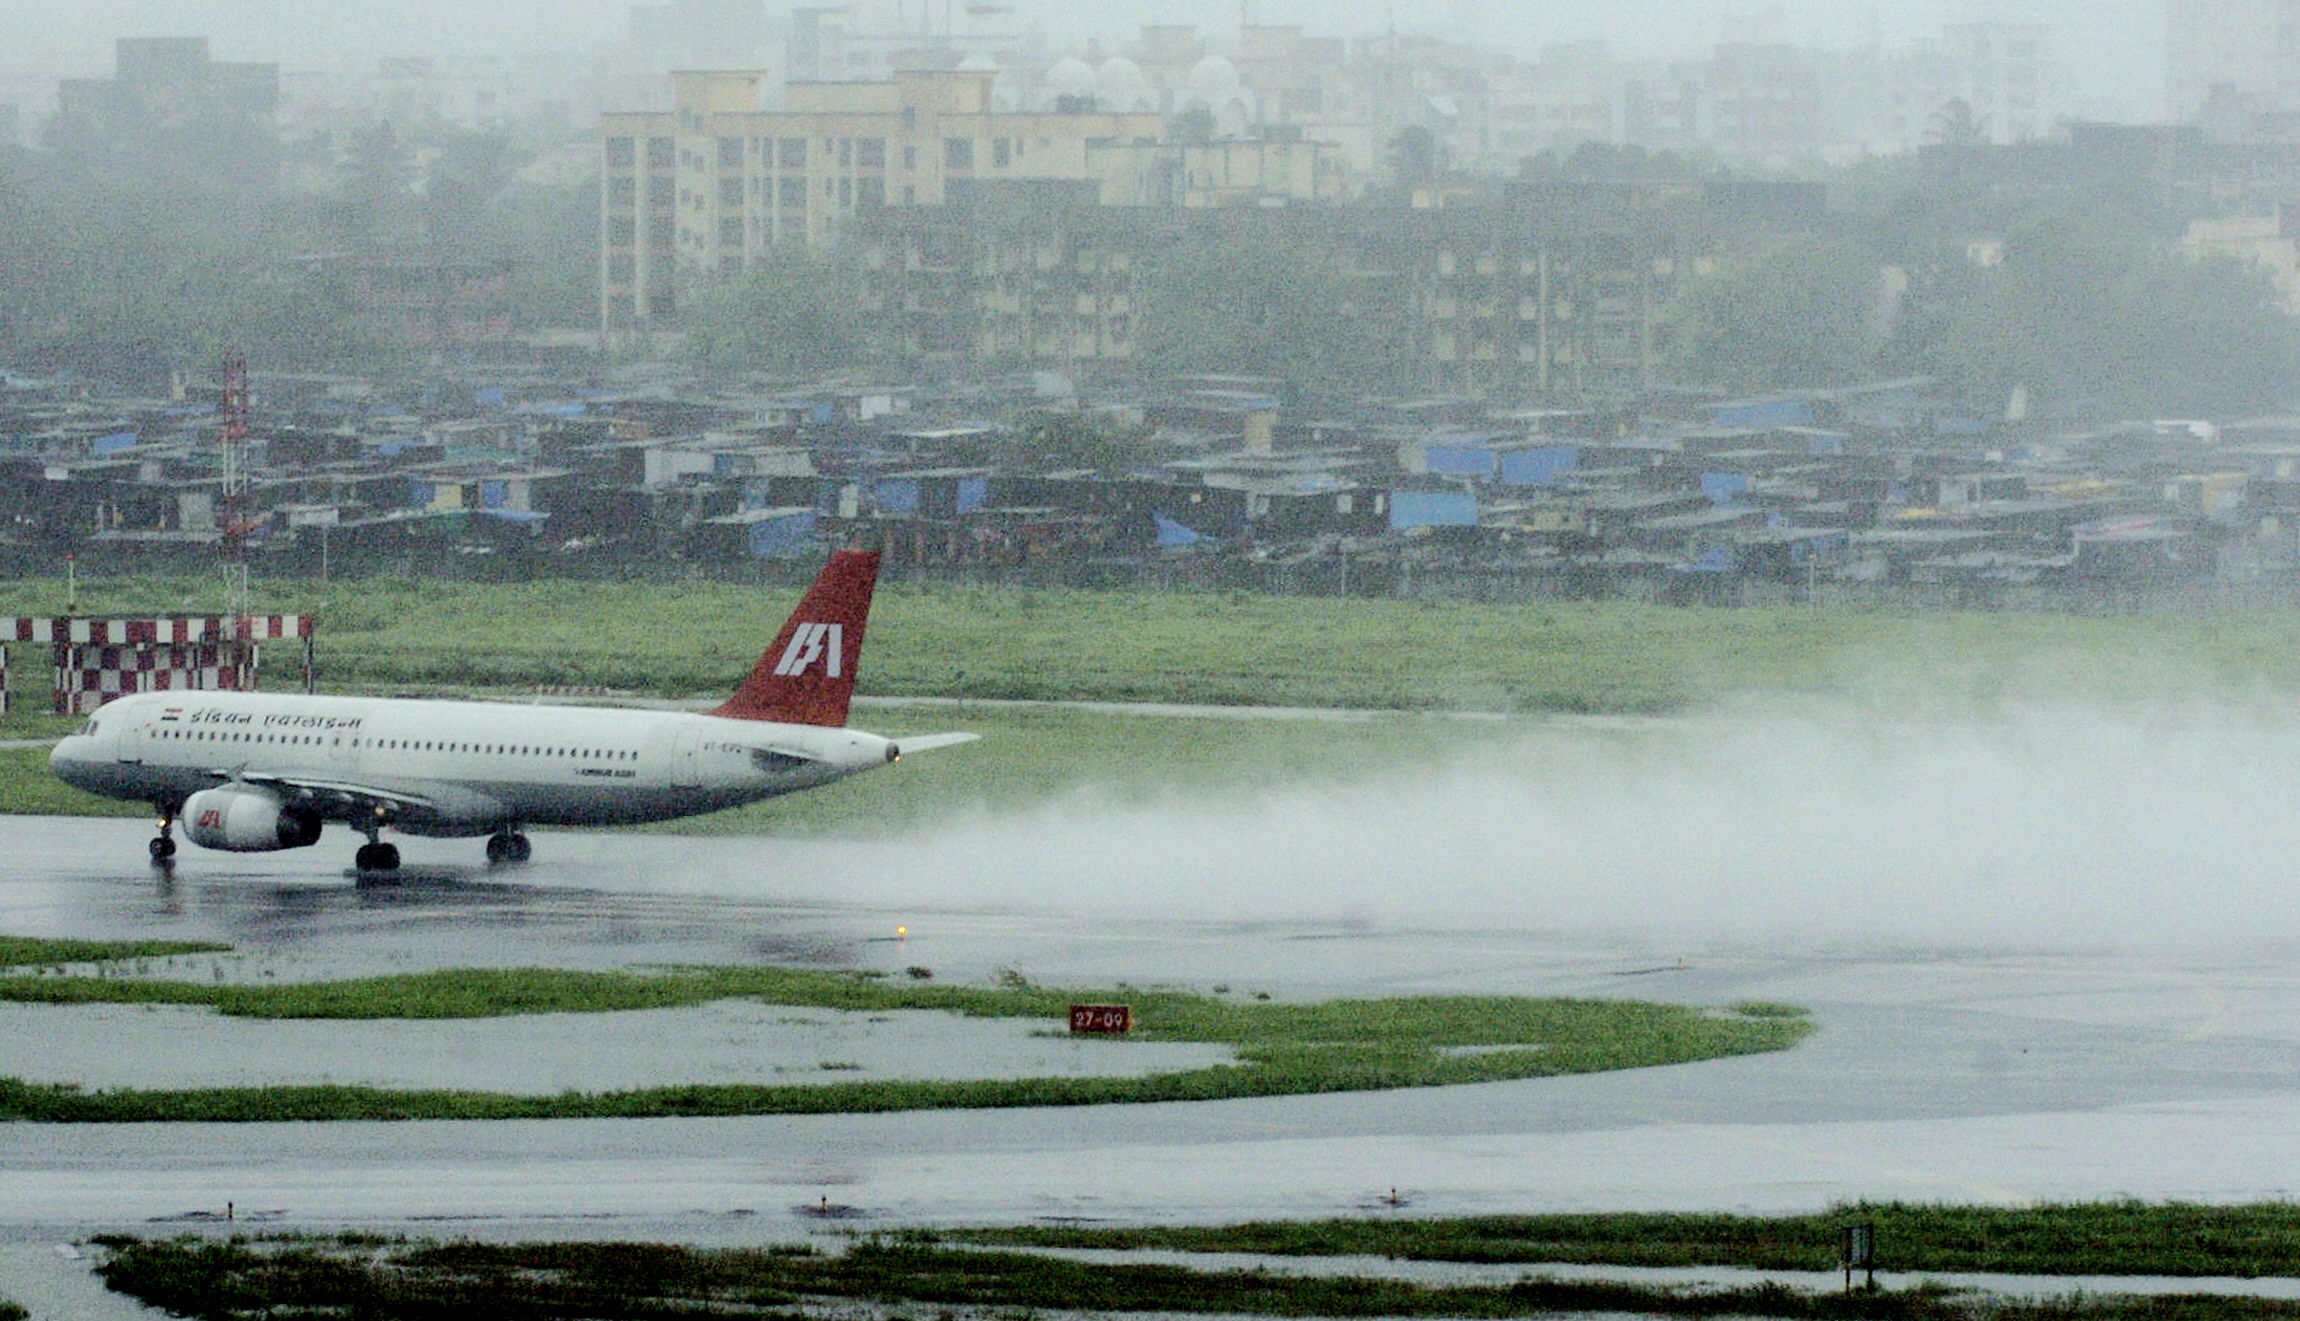 India's two busiest airports to shut down runways for repair